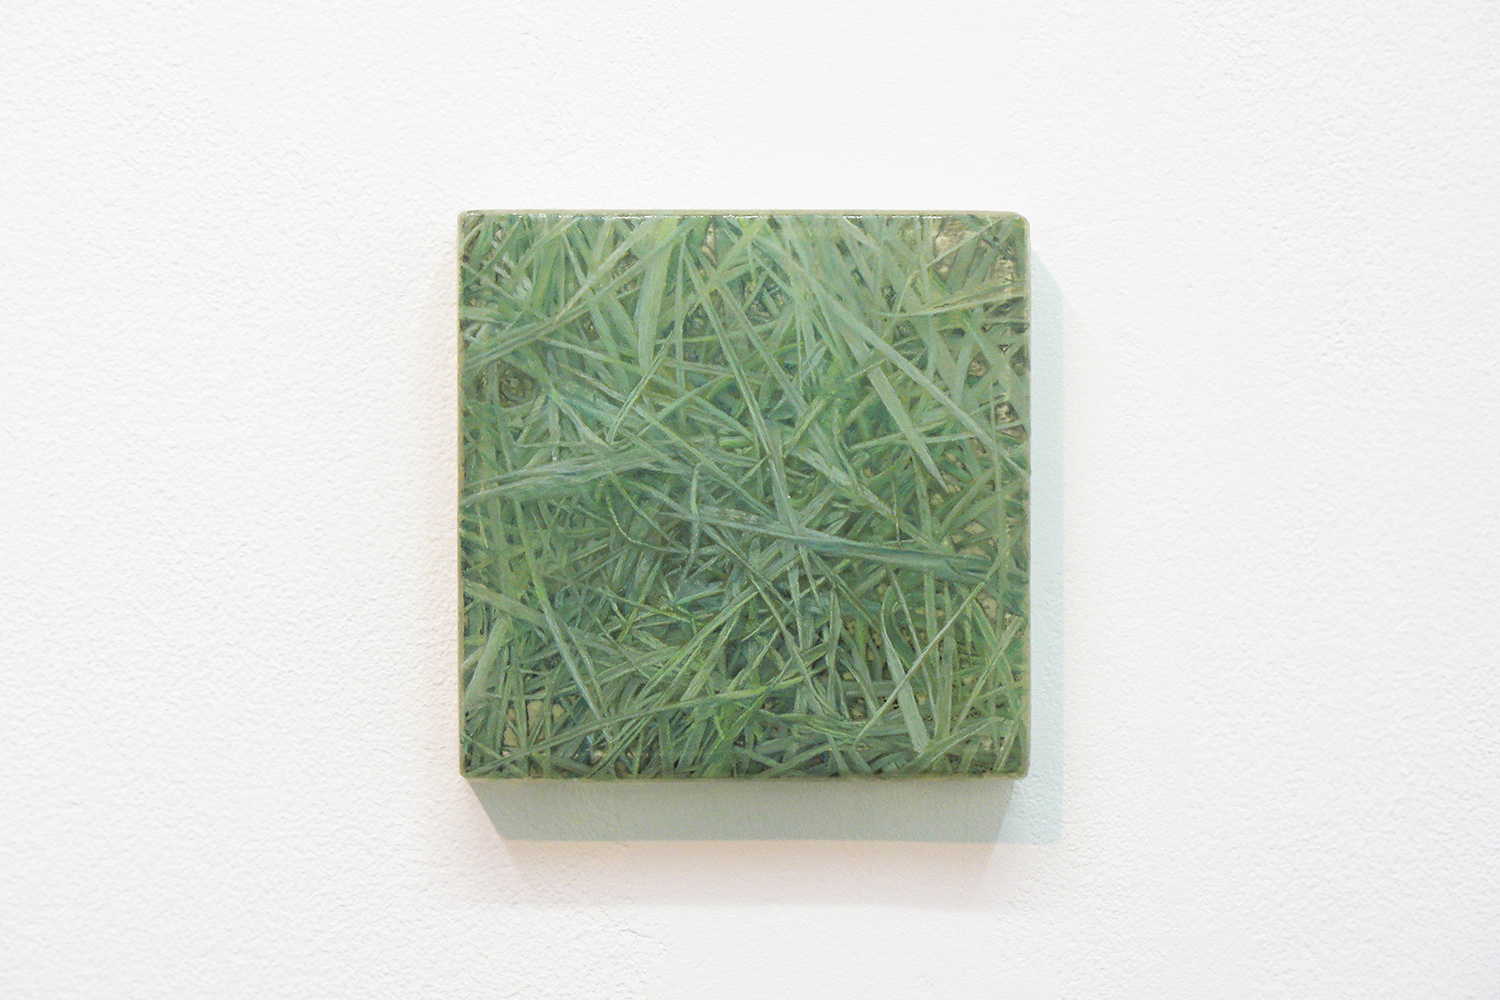 Photo painting 「草上の手触り」|11・1, 11 x 11cm|Oil on FRP panel|2011